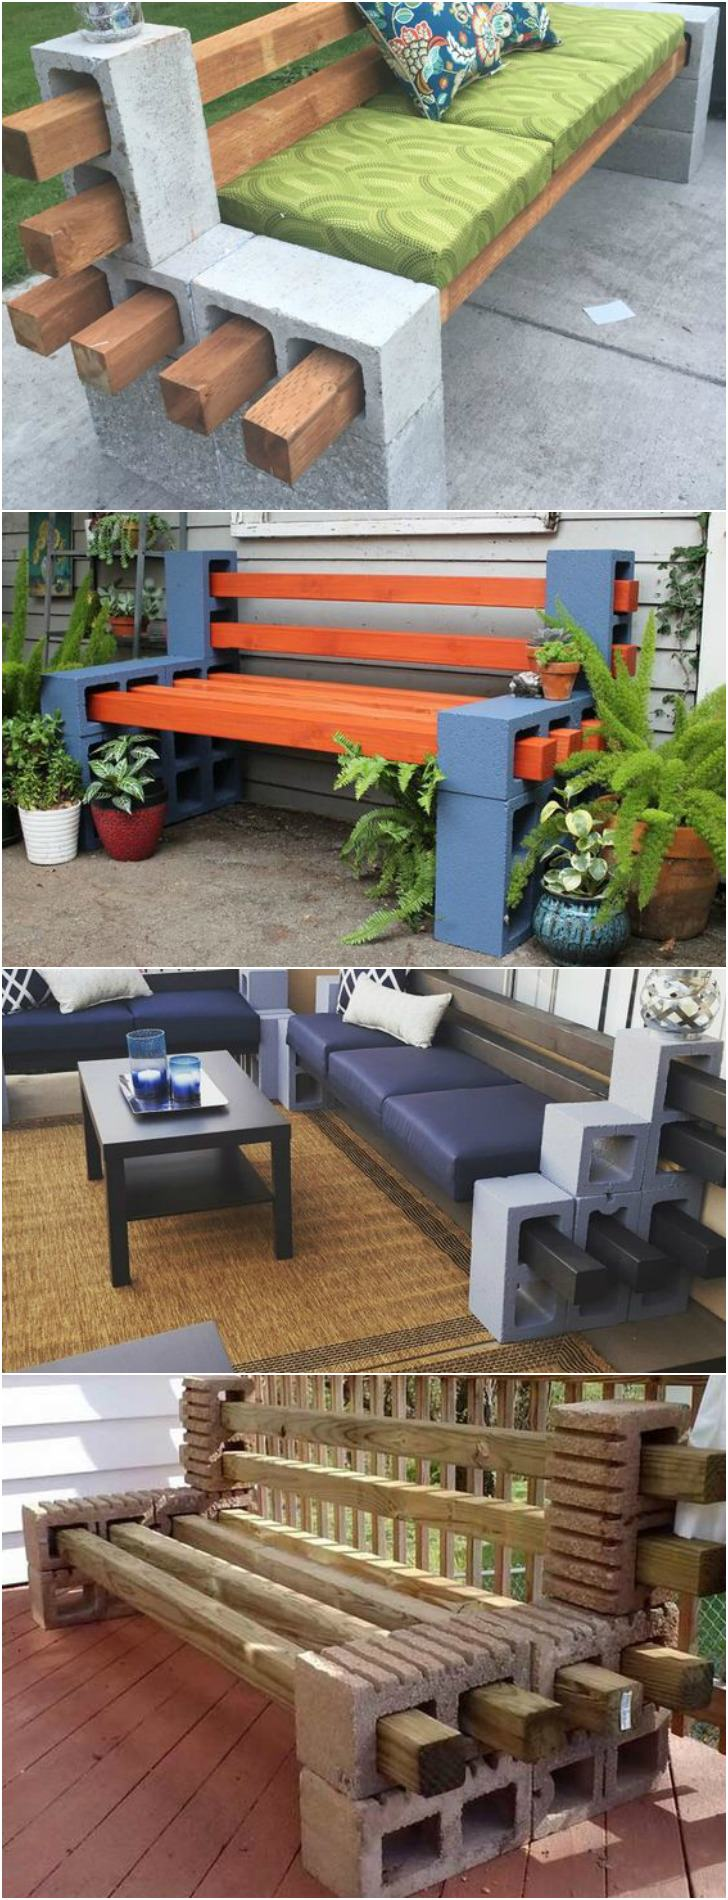 How to Make a Bench from Cinder Blocks